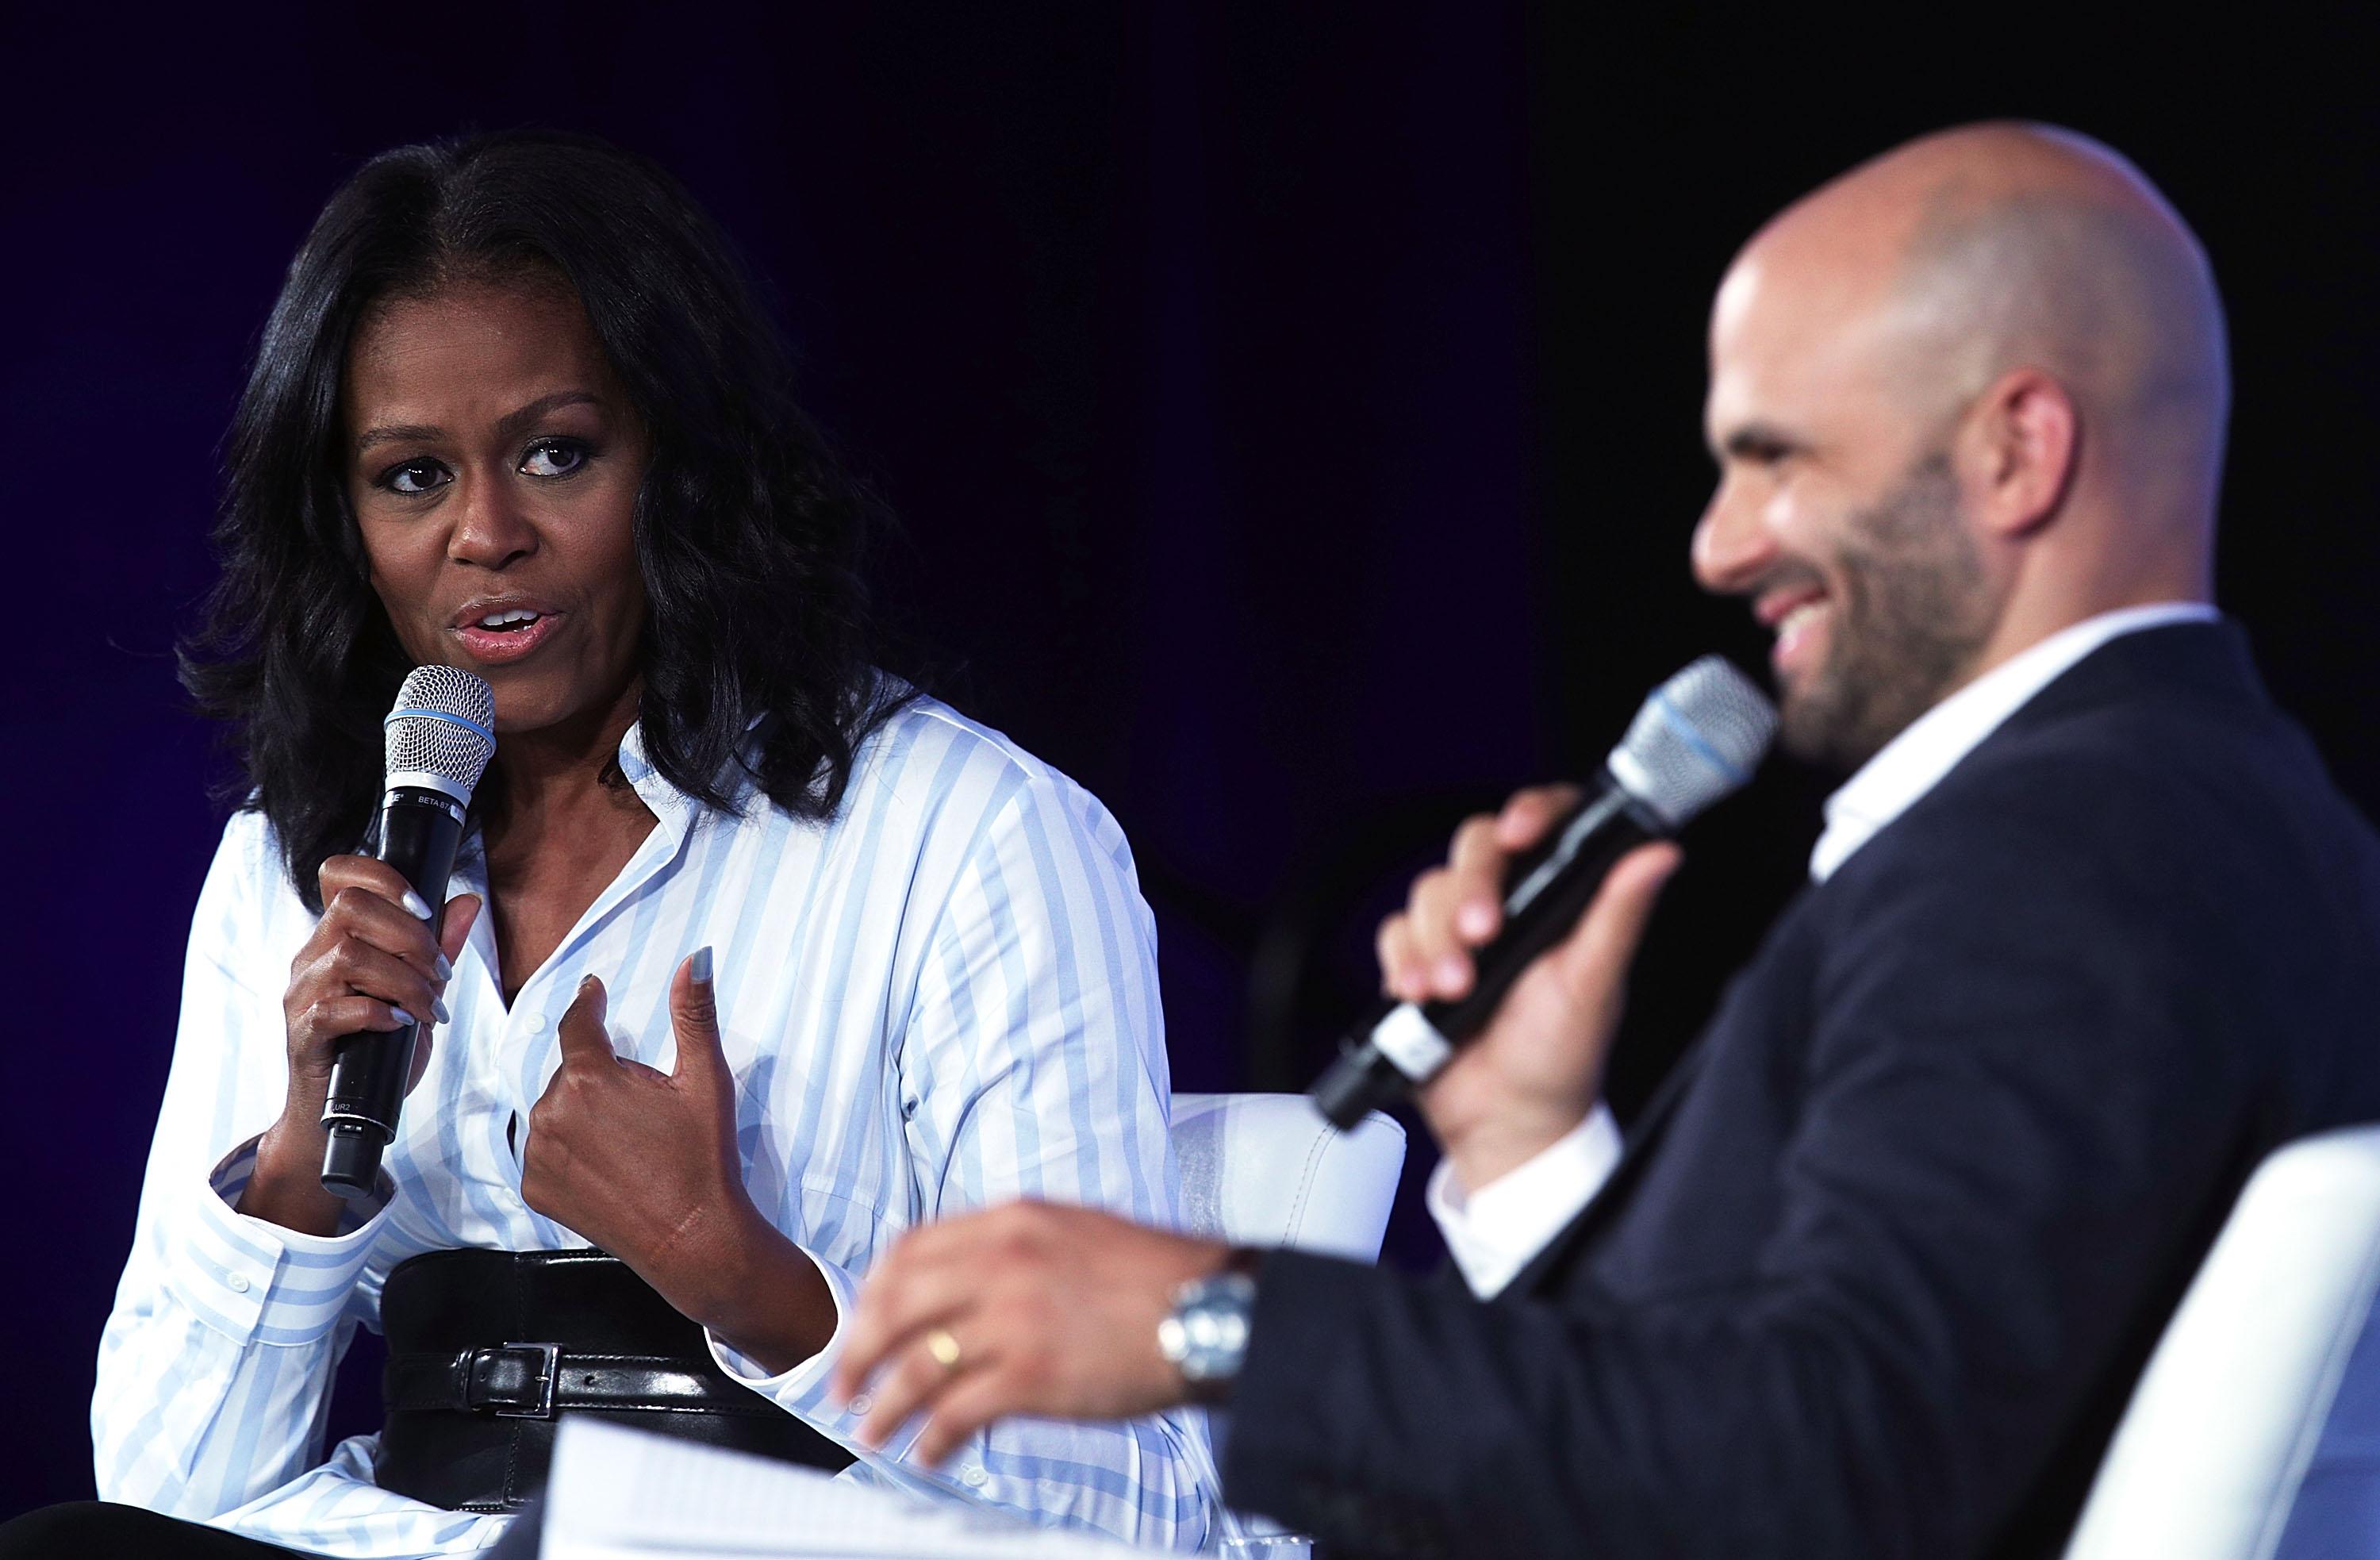 WASHINGTON, DC - MAY 12:  Former First Lady Michelle Obama (L) participates in a discussion with former White House chef and Senior Policy Advisor for Nutrition Policy Sam Kass (R) during the Partnership for a Healthier America Summit May 12, 2017 in Washington, DC. The PHA held its summit to address childhood obesity.  (Photo by Alex Wong/Getty Images)